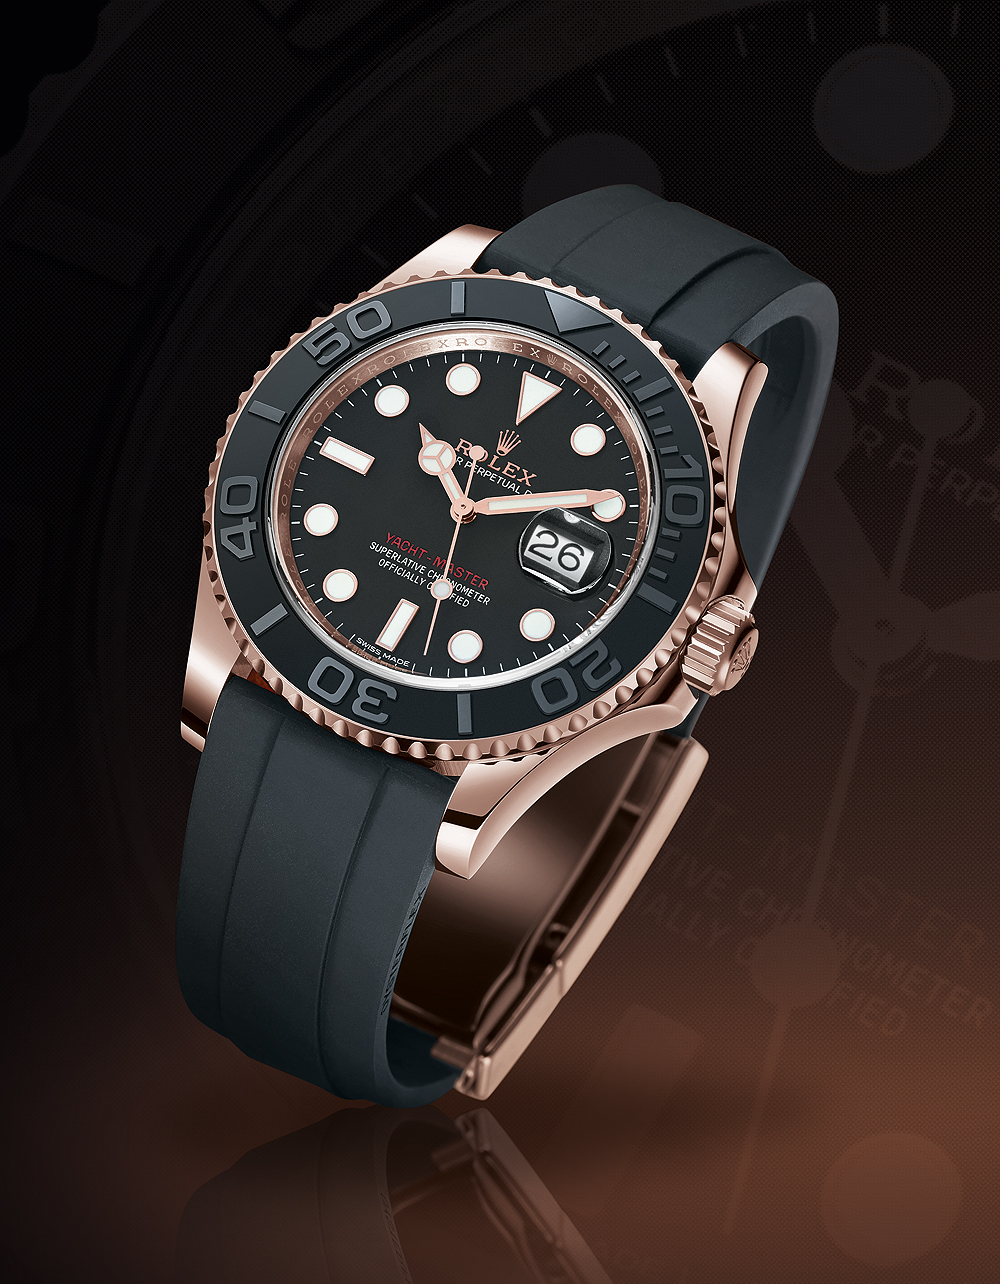 Rolexs Watches Swanky Sailor Reviewing The Rolex Oyster Perpetual Yacht Master